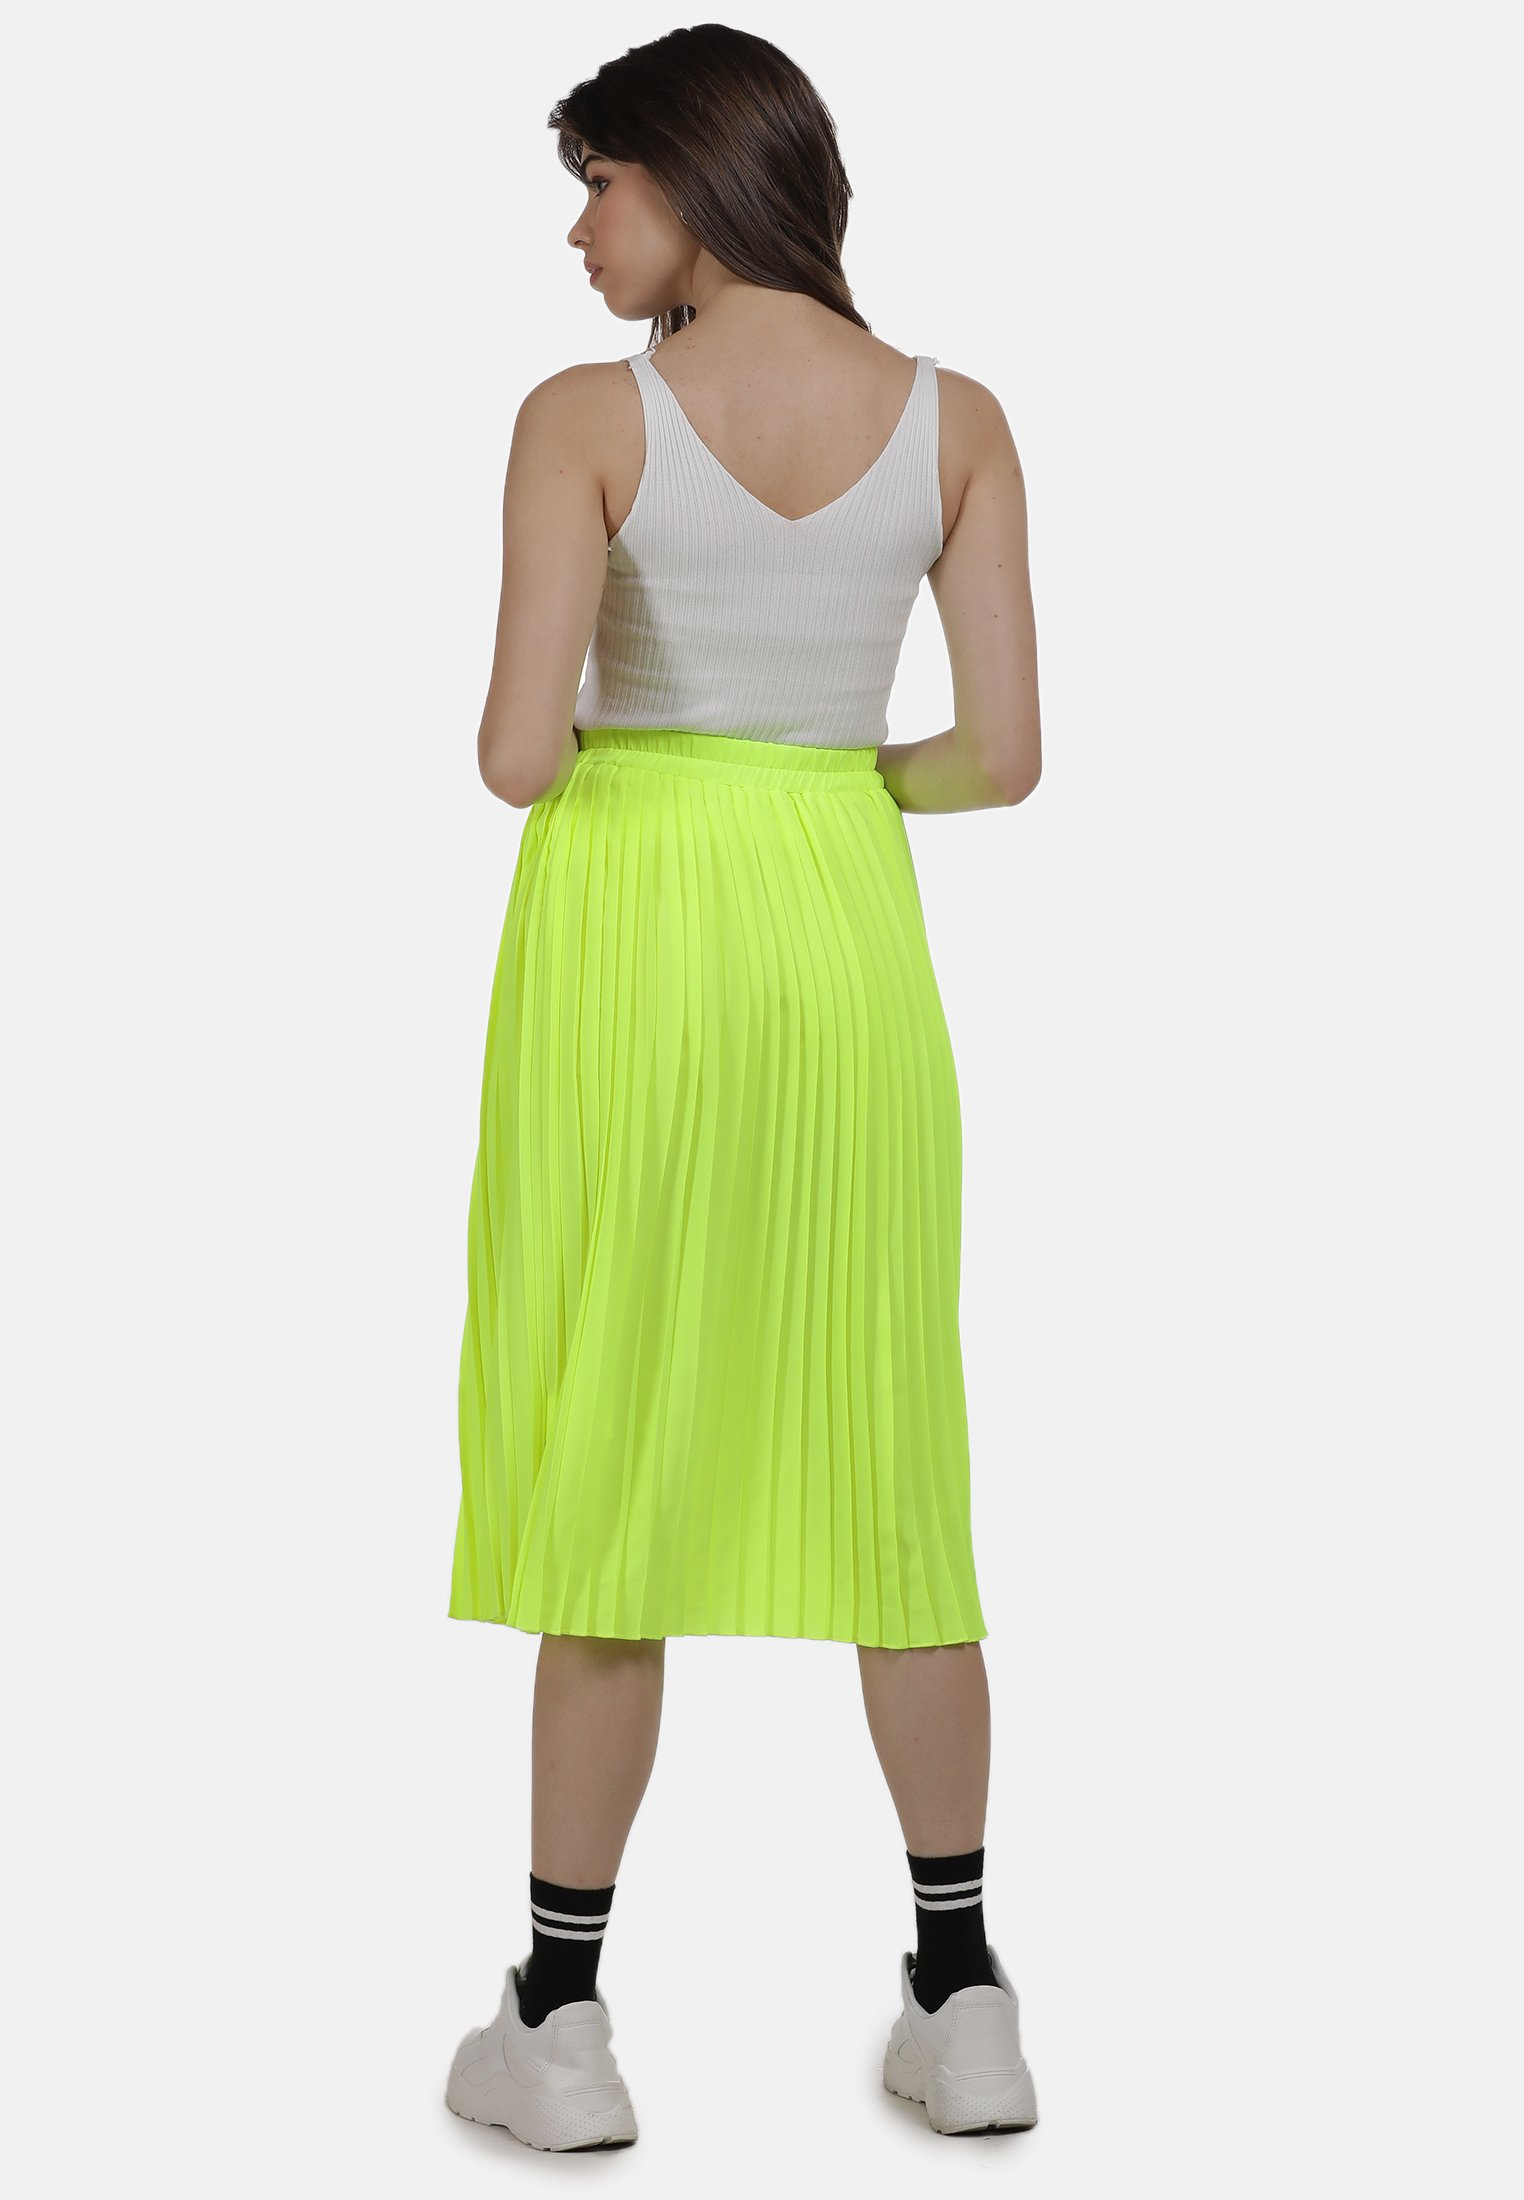 Shop For Women's Clothing myMo ROCK A-line skirt neon gelb 5wj8bEOXL